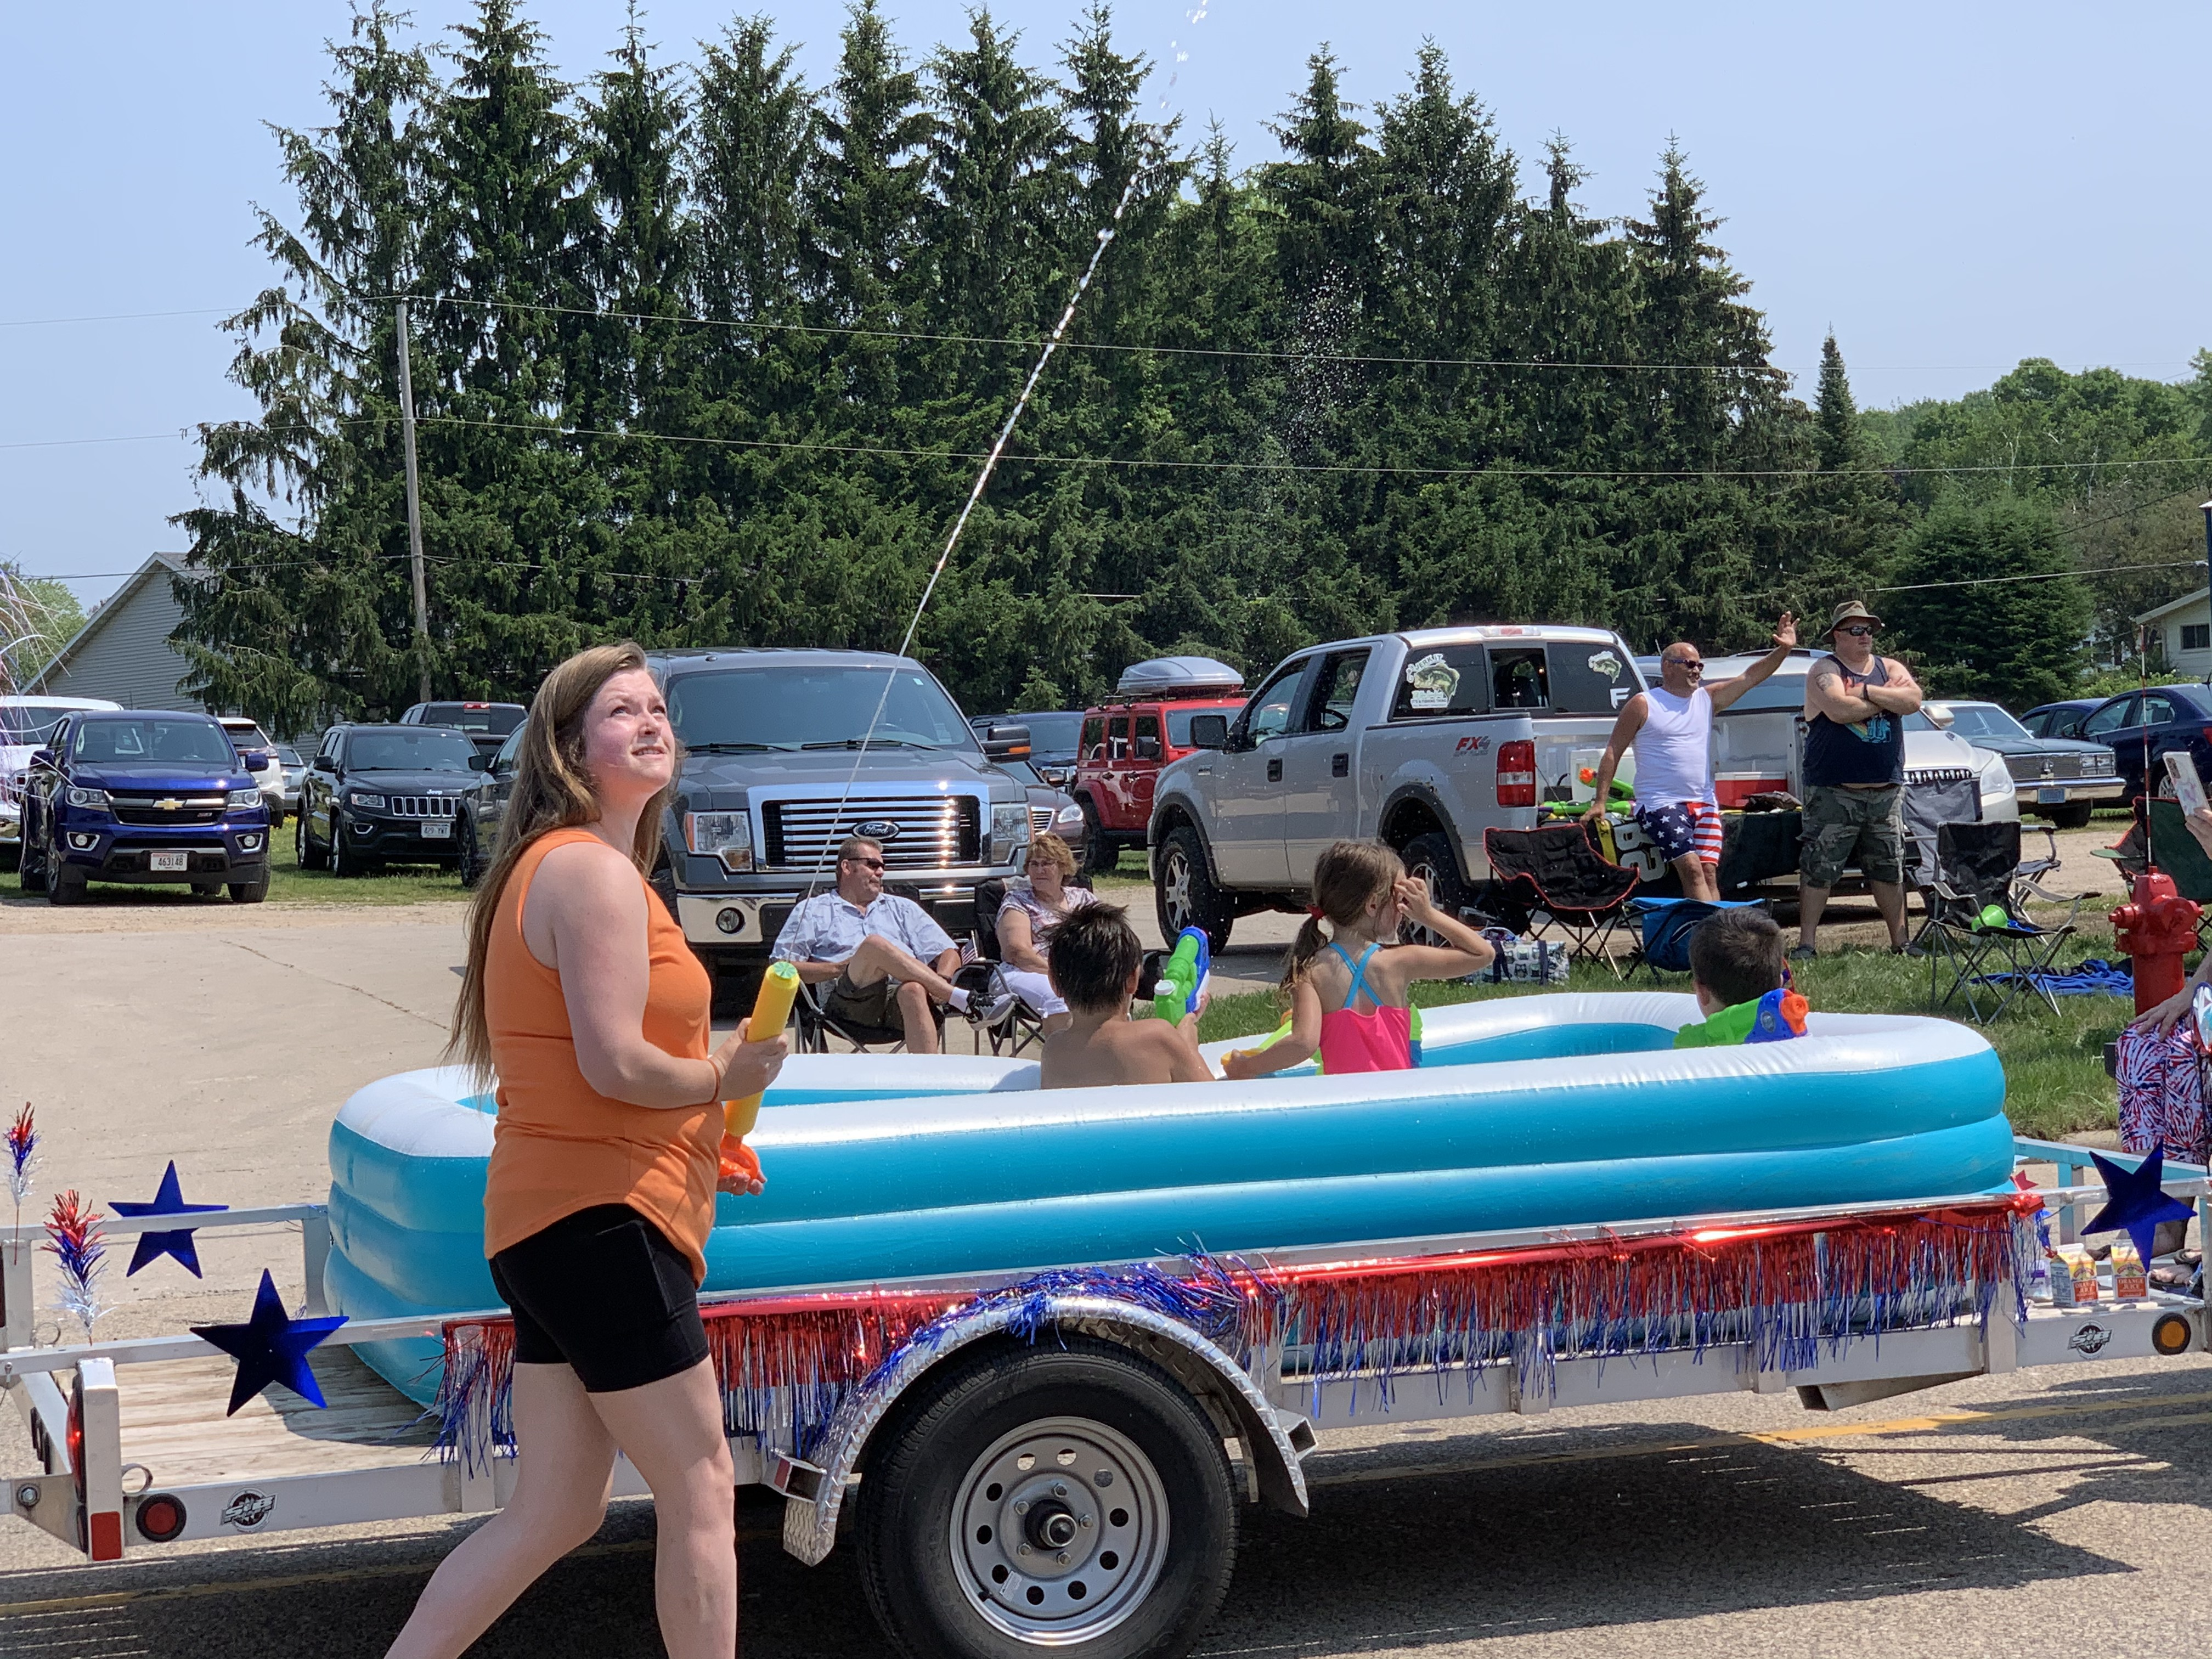 Water was squirted to cool visitors of the Fourth of July parade as temperatures reached 90 degrees in Bonduel on July 4.Luke Reimer | NEW Media